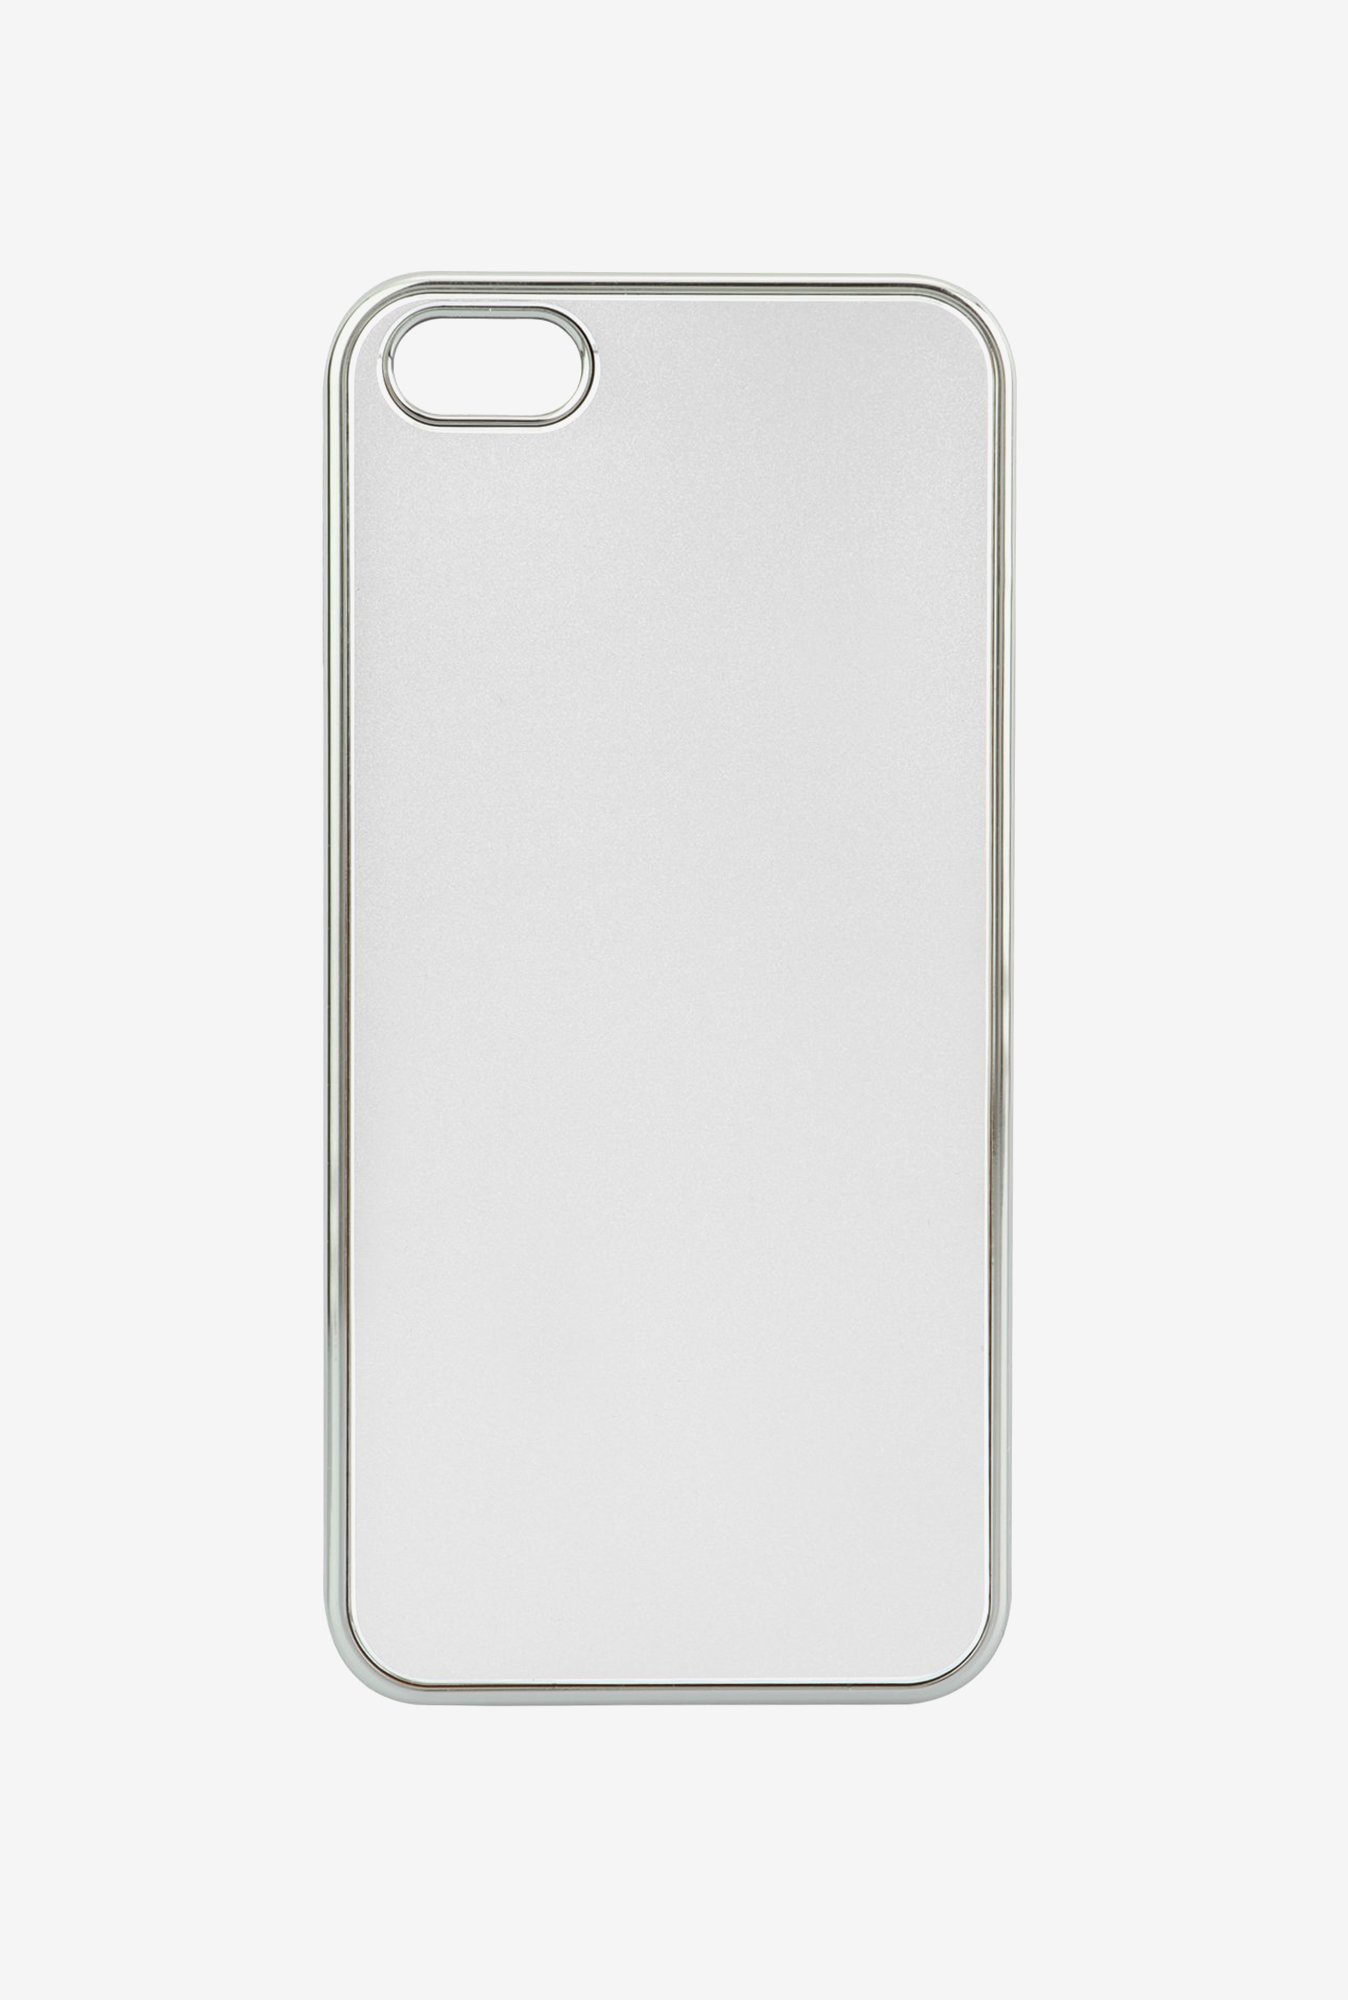 Memumi Classic Back Cover for iPhone 5 (Silver)